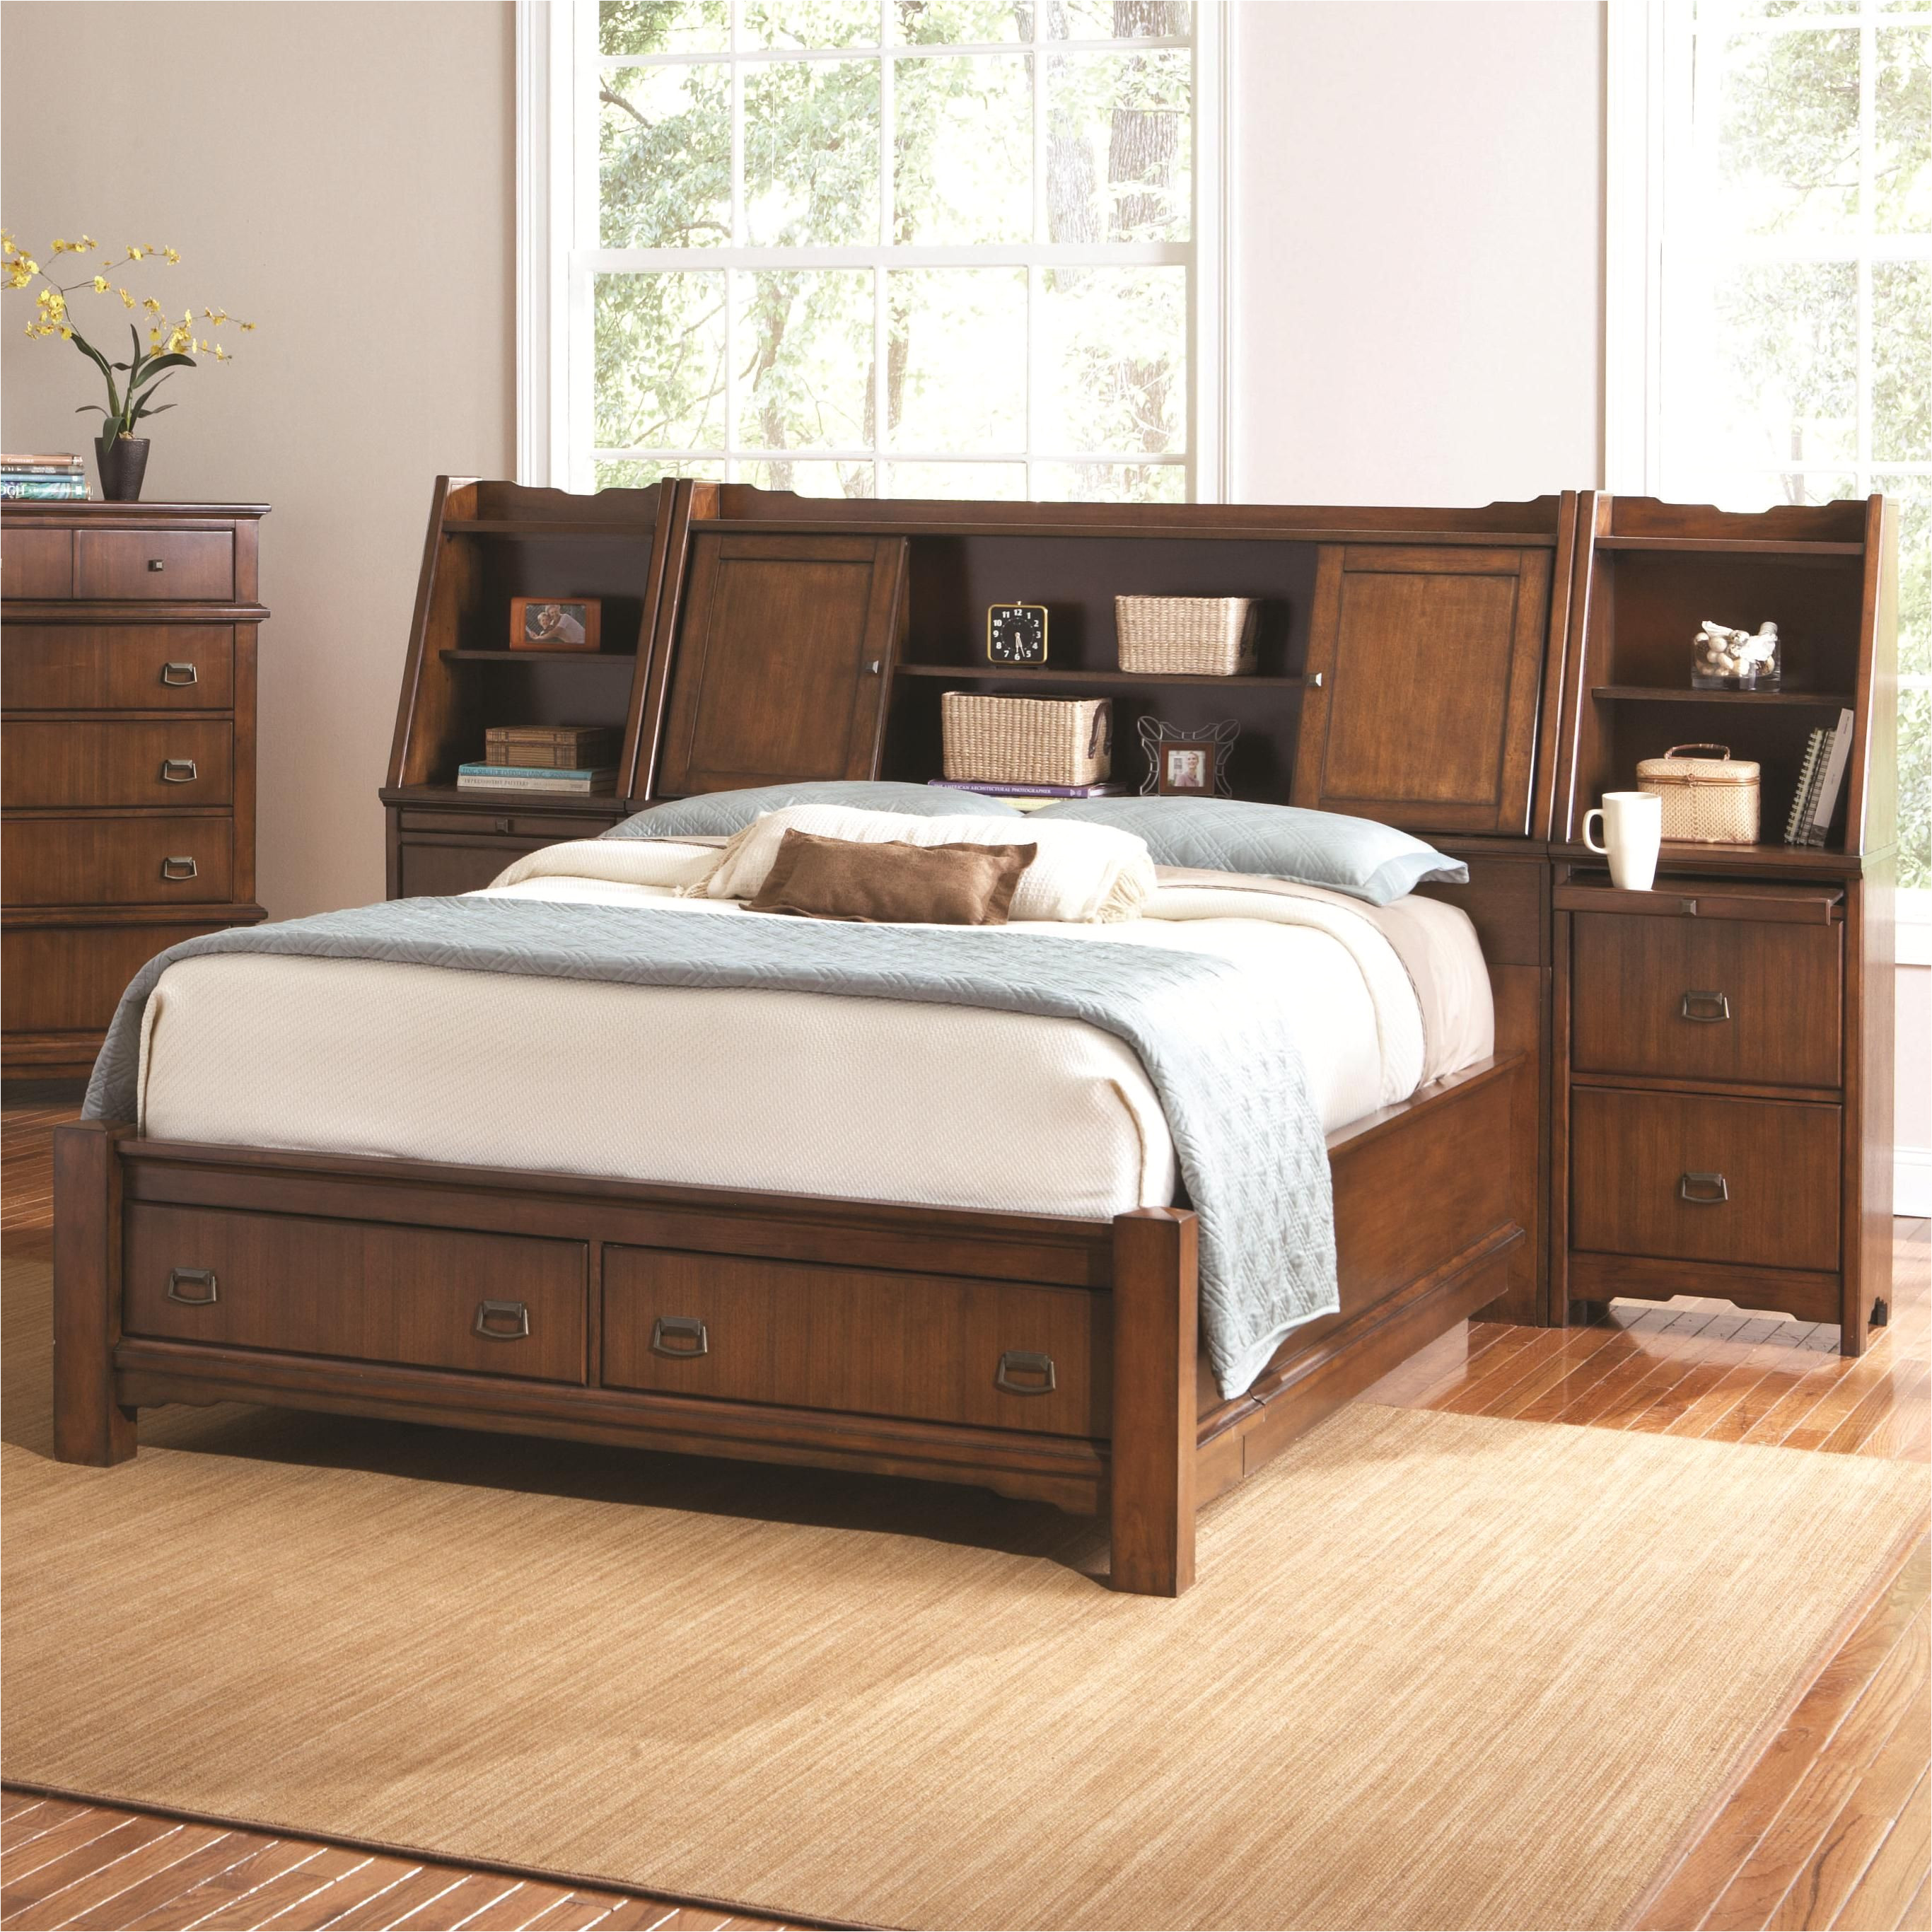 grendel eastern king bookcase bed with footboard storage and hutch headboard by coaster coaster bookcase bed